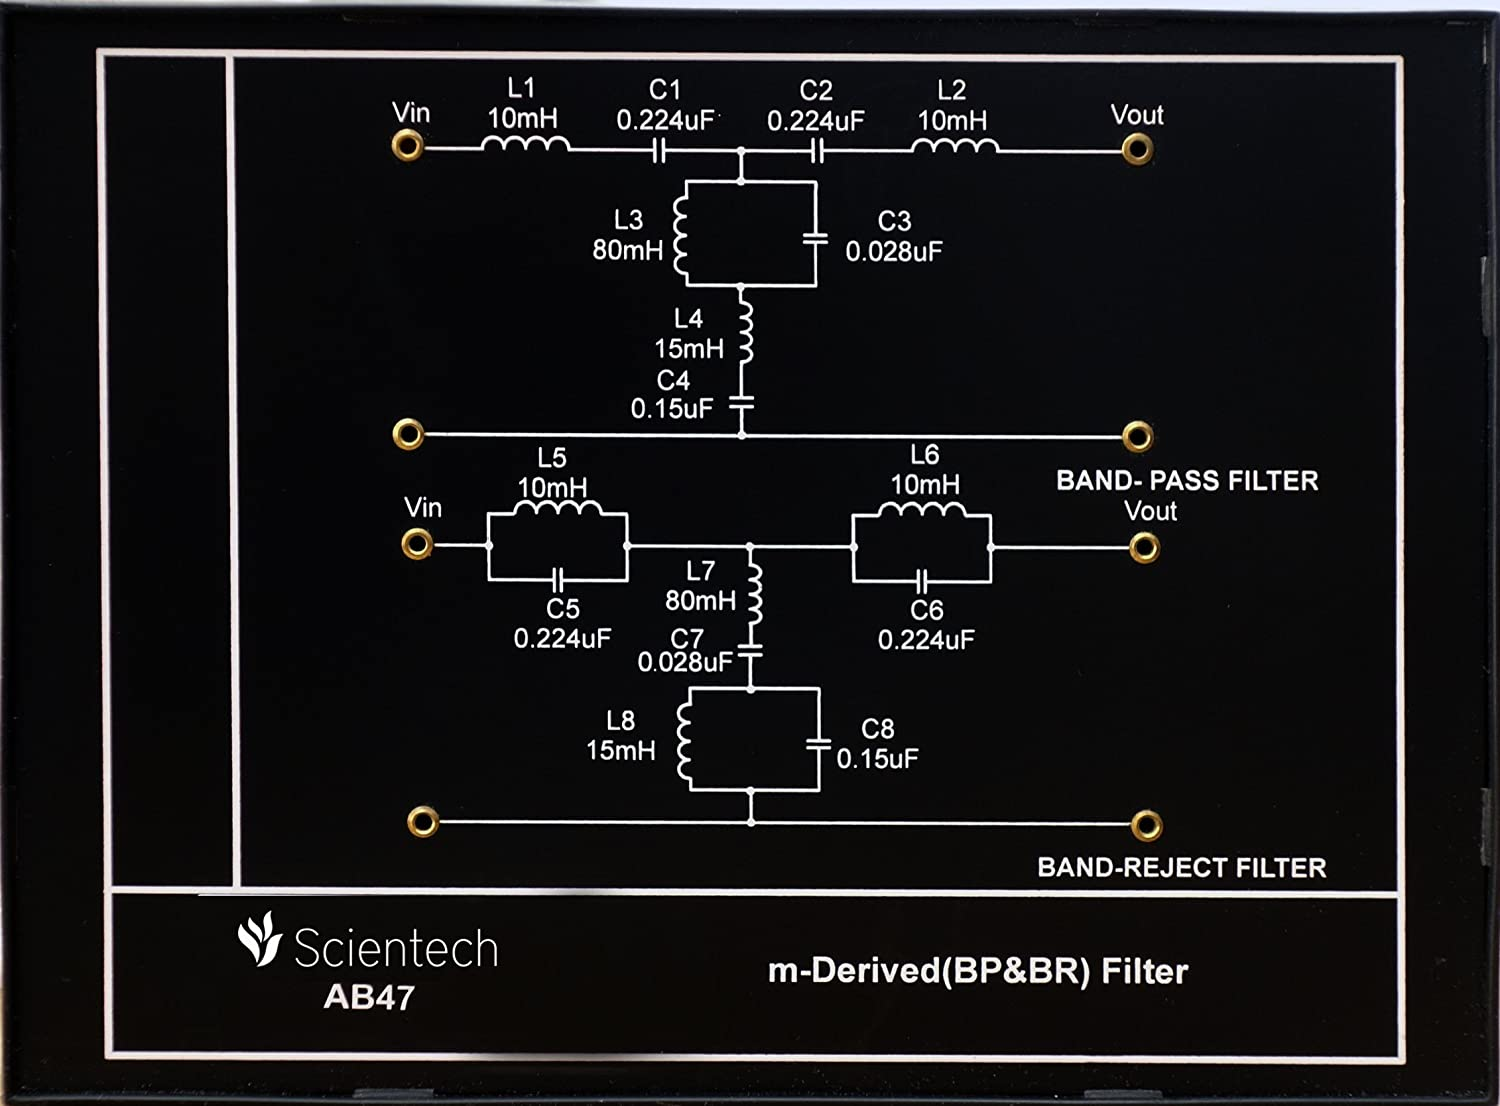 Ab47 M Derived Bp Br Filter Experiment Board And Trainer Kit Bandpass Band Reject A Circuit Is With 1 Year Warranty Without Power Supply